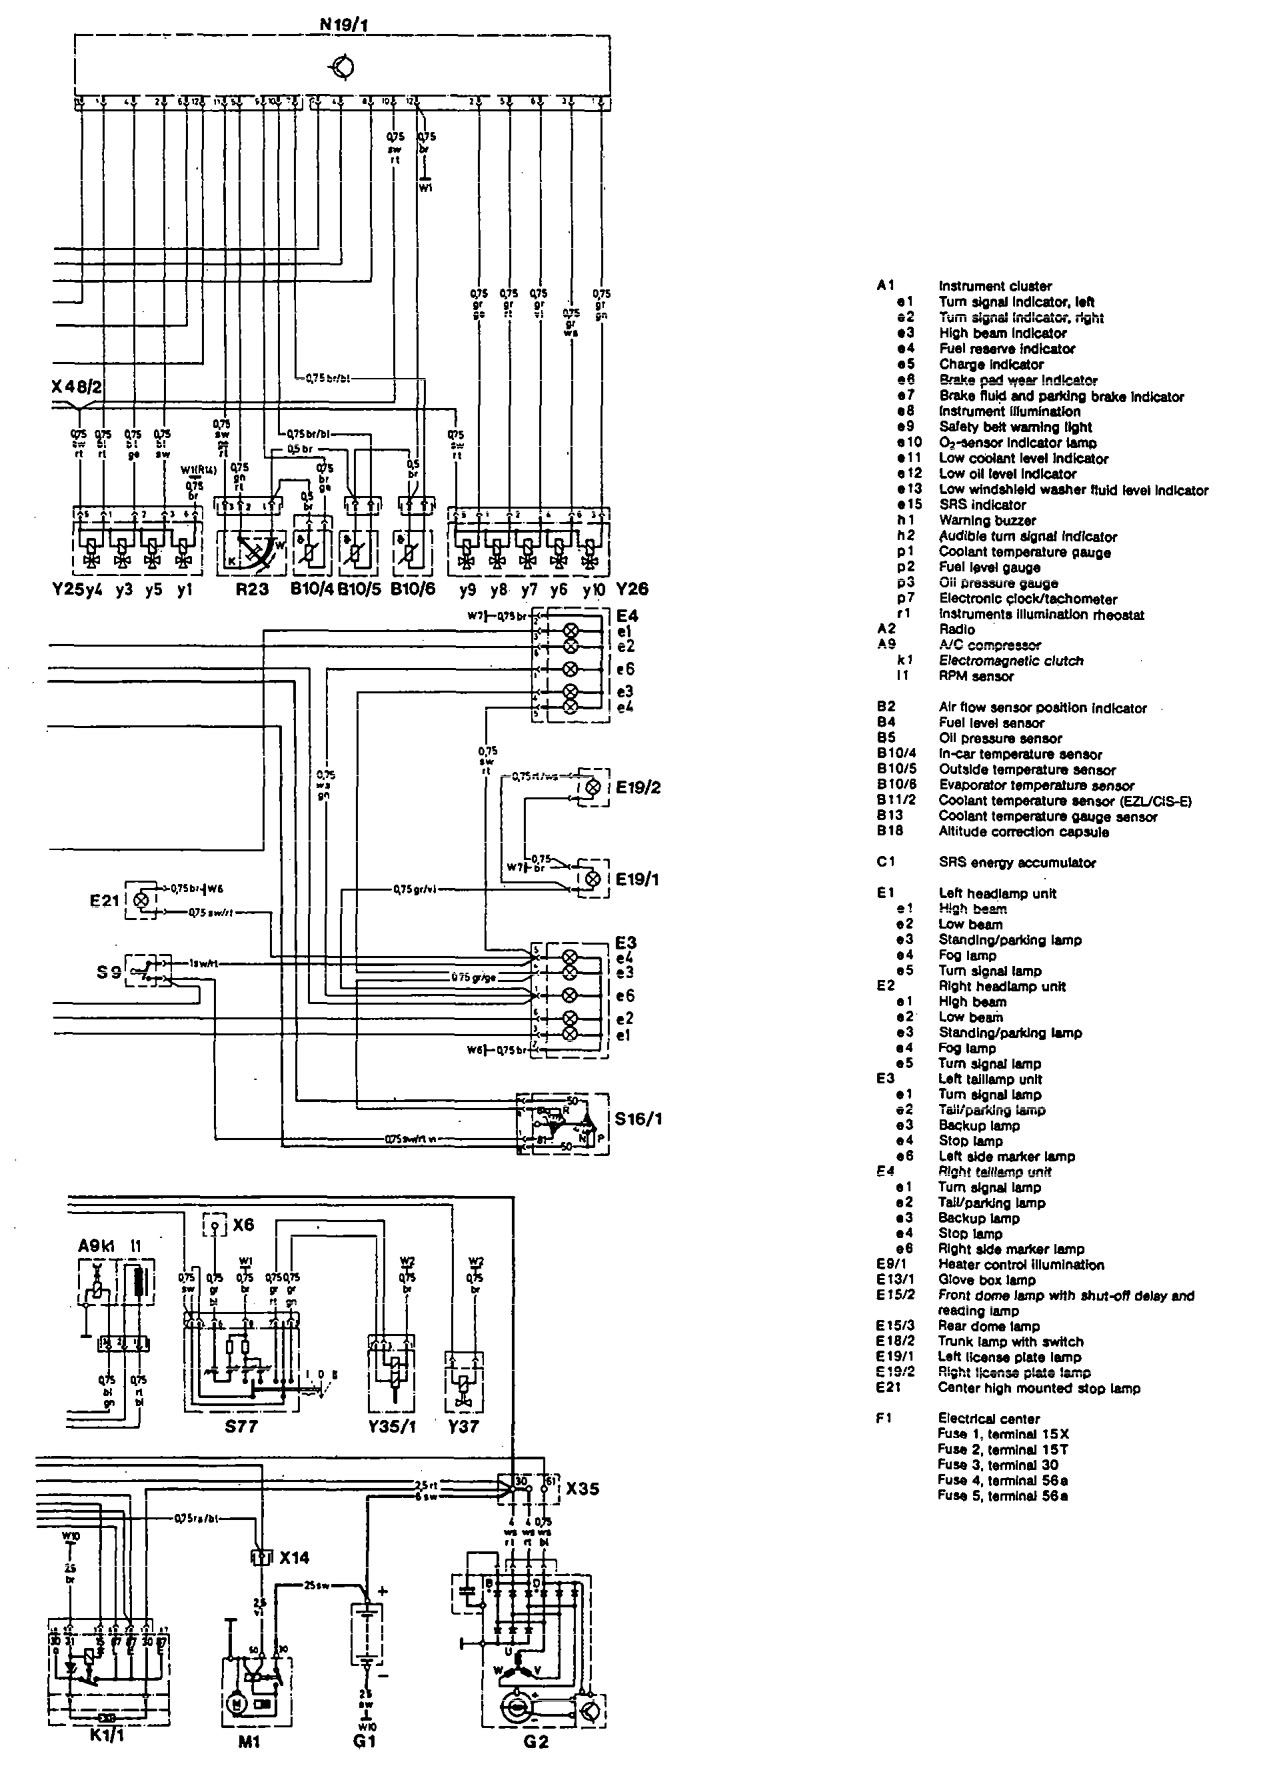 Mercedes Benz S550 Parts Diagram. Mercedes. Auto Wiring